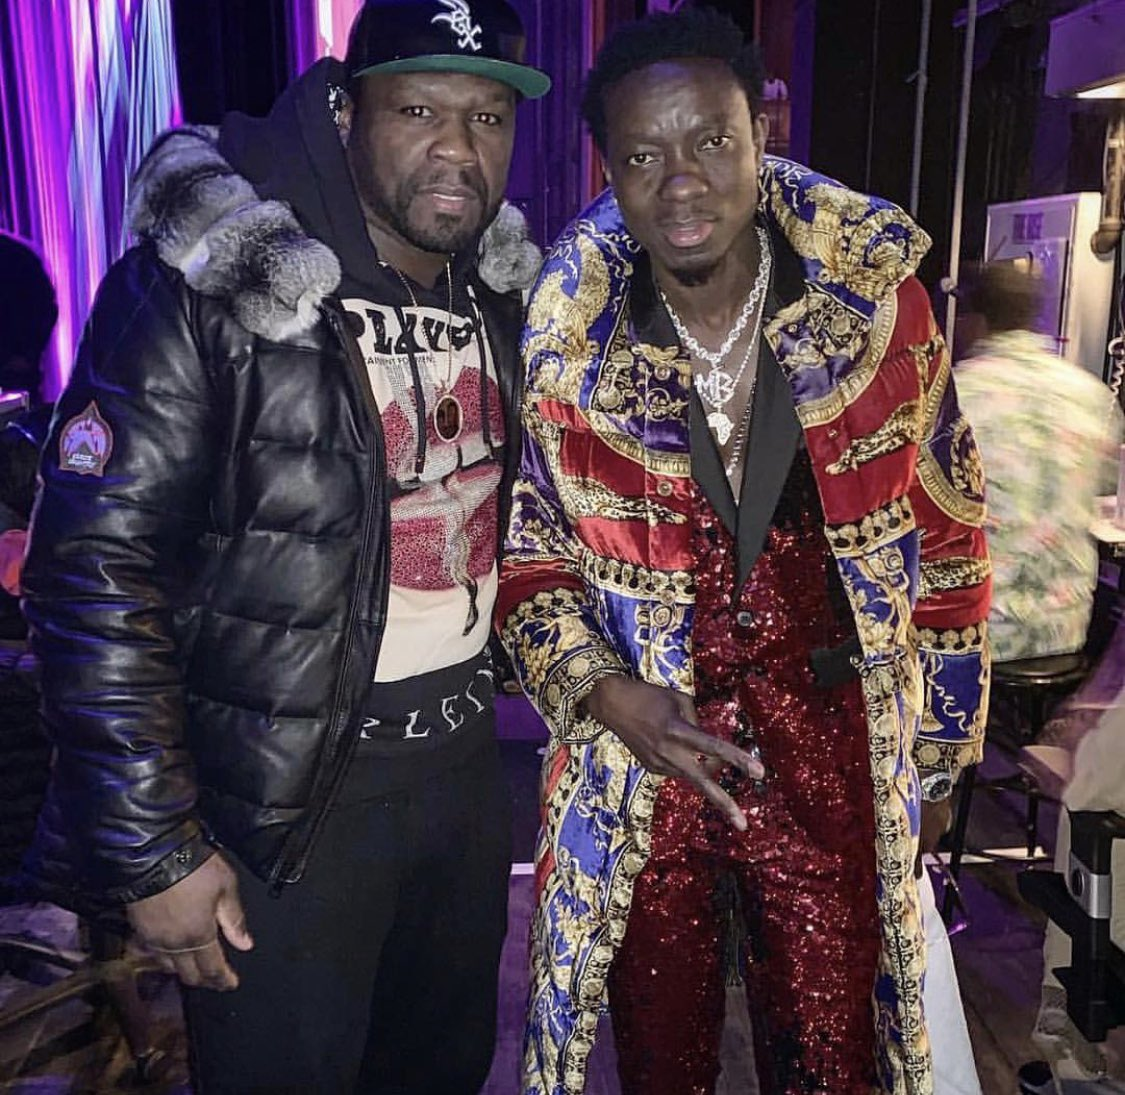 I would rather wear the shit @MichaelBlackson got on then Gucci right now. 🤦♂️what the fuck Michael 🤔#bellator #bransoncognac #lecheminduroi